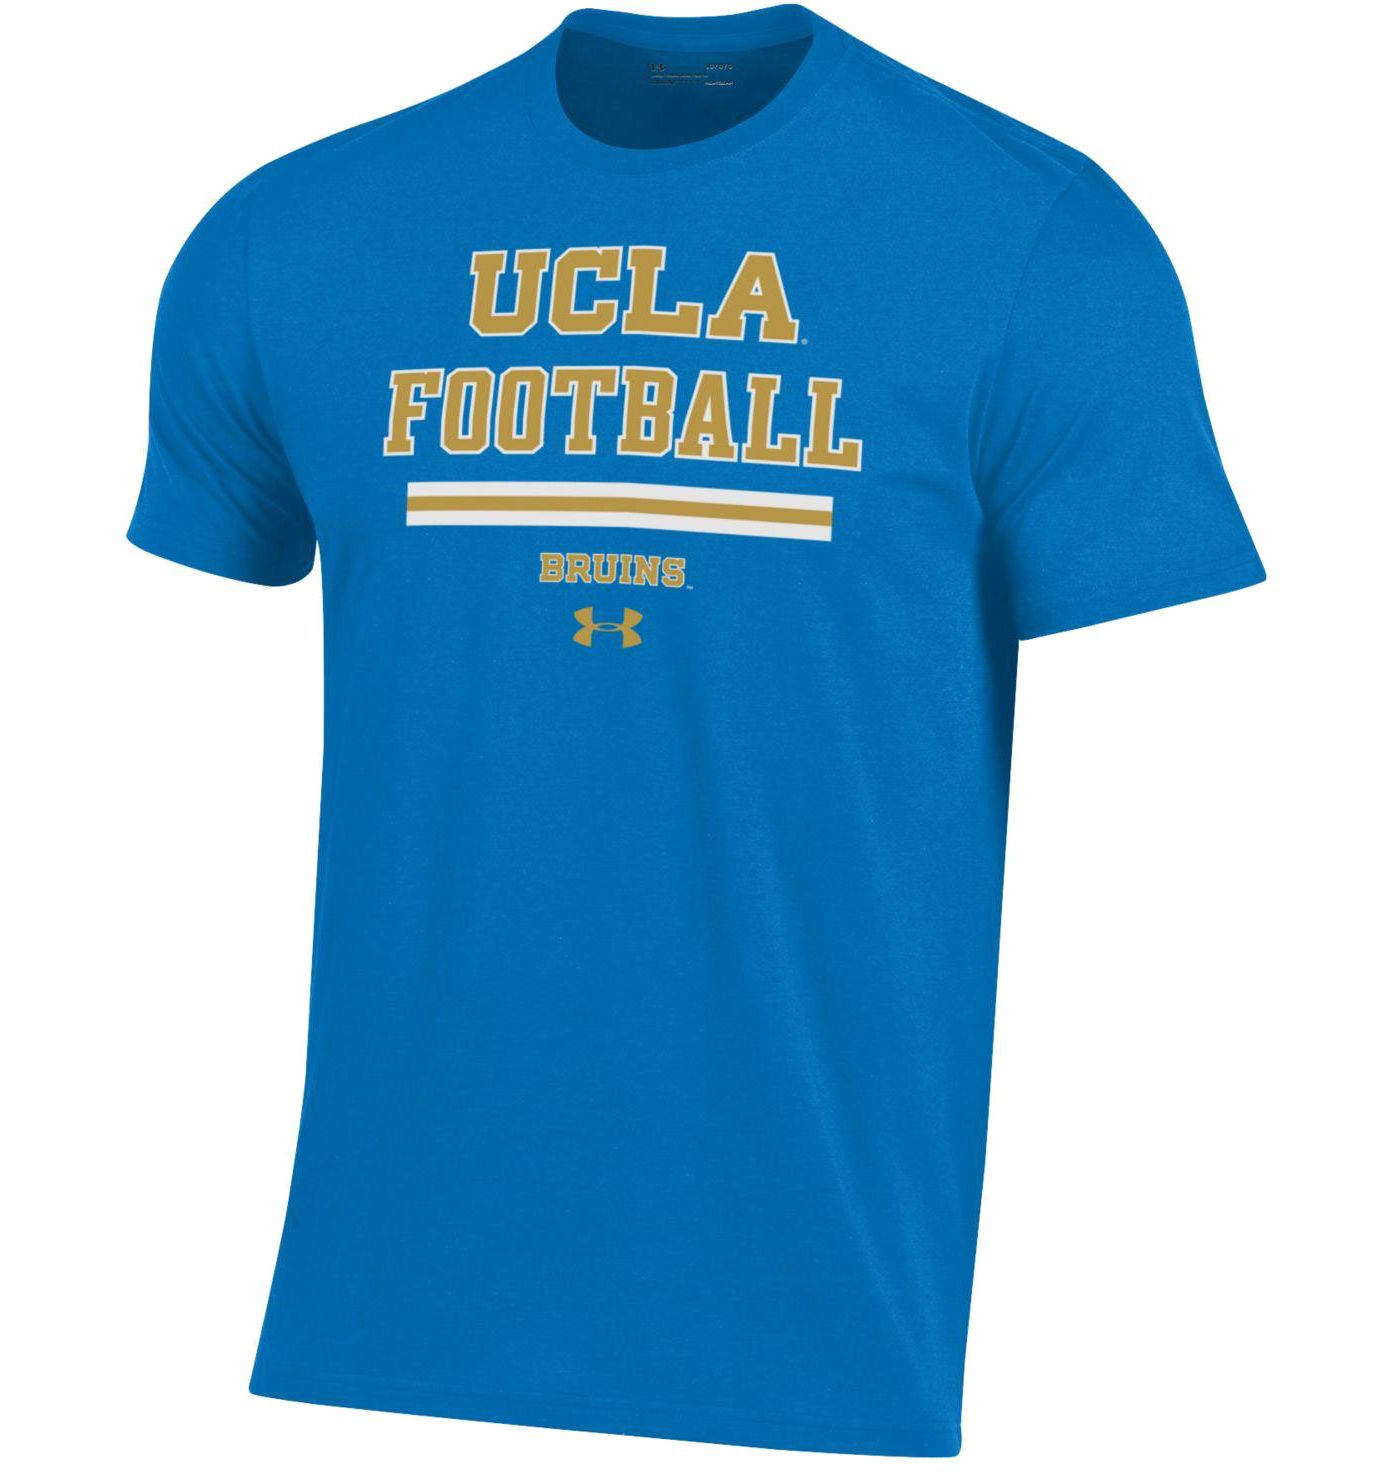 Under Armour Men's UCLA Bruins True Blue Football Performance Cotton T-Shirt